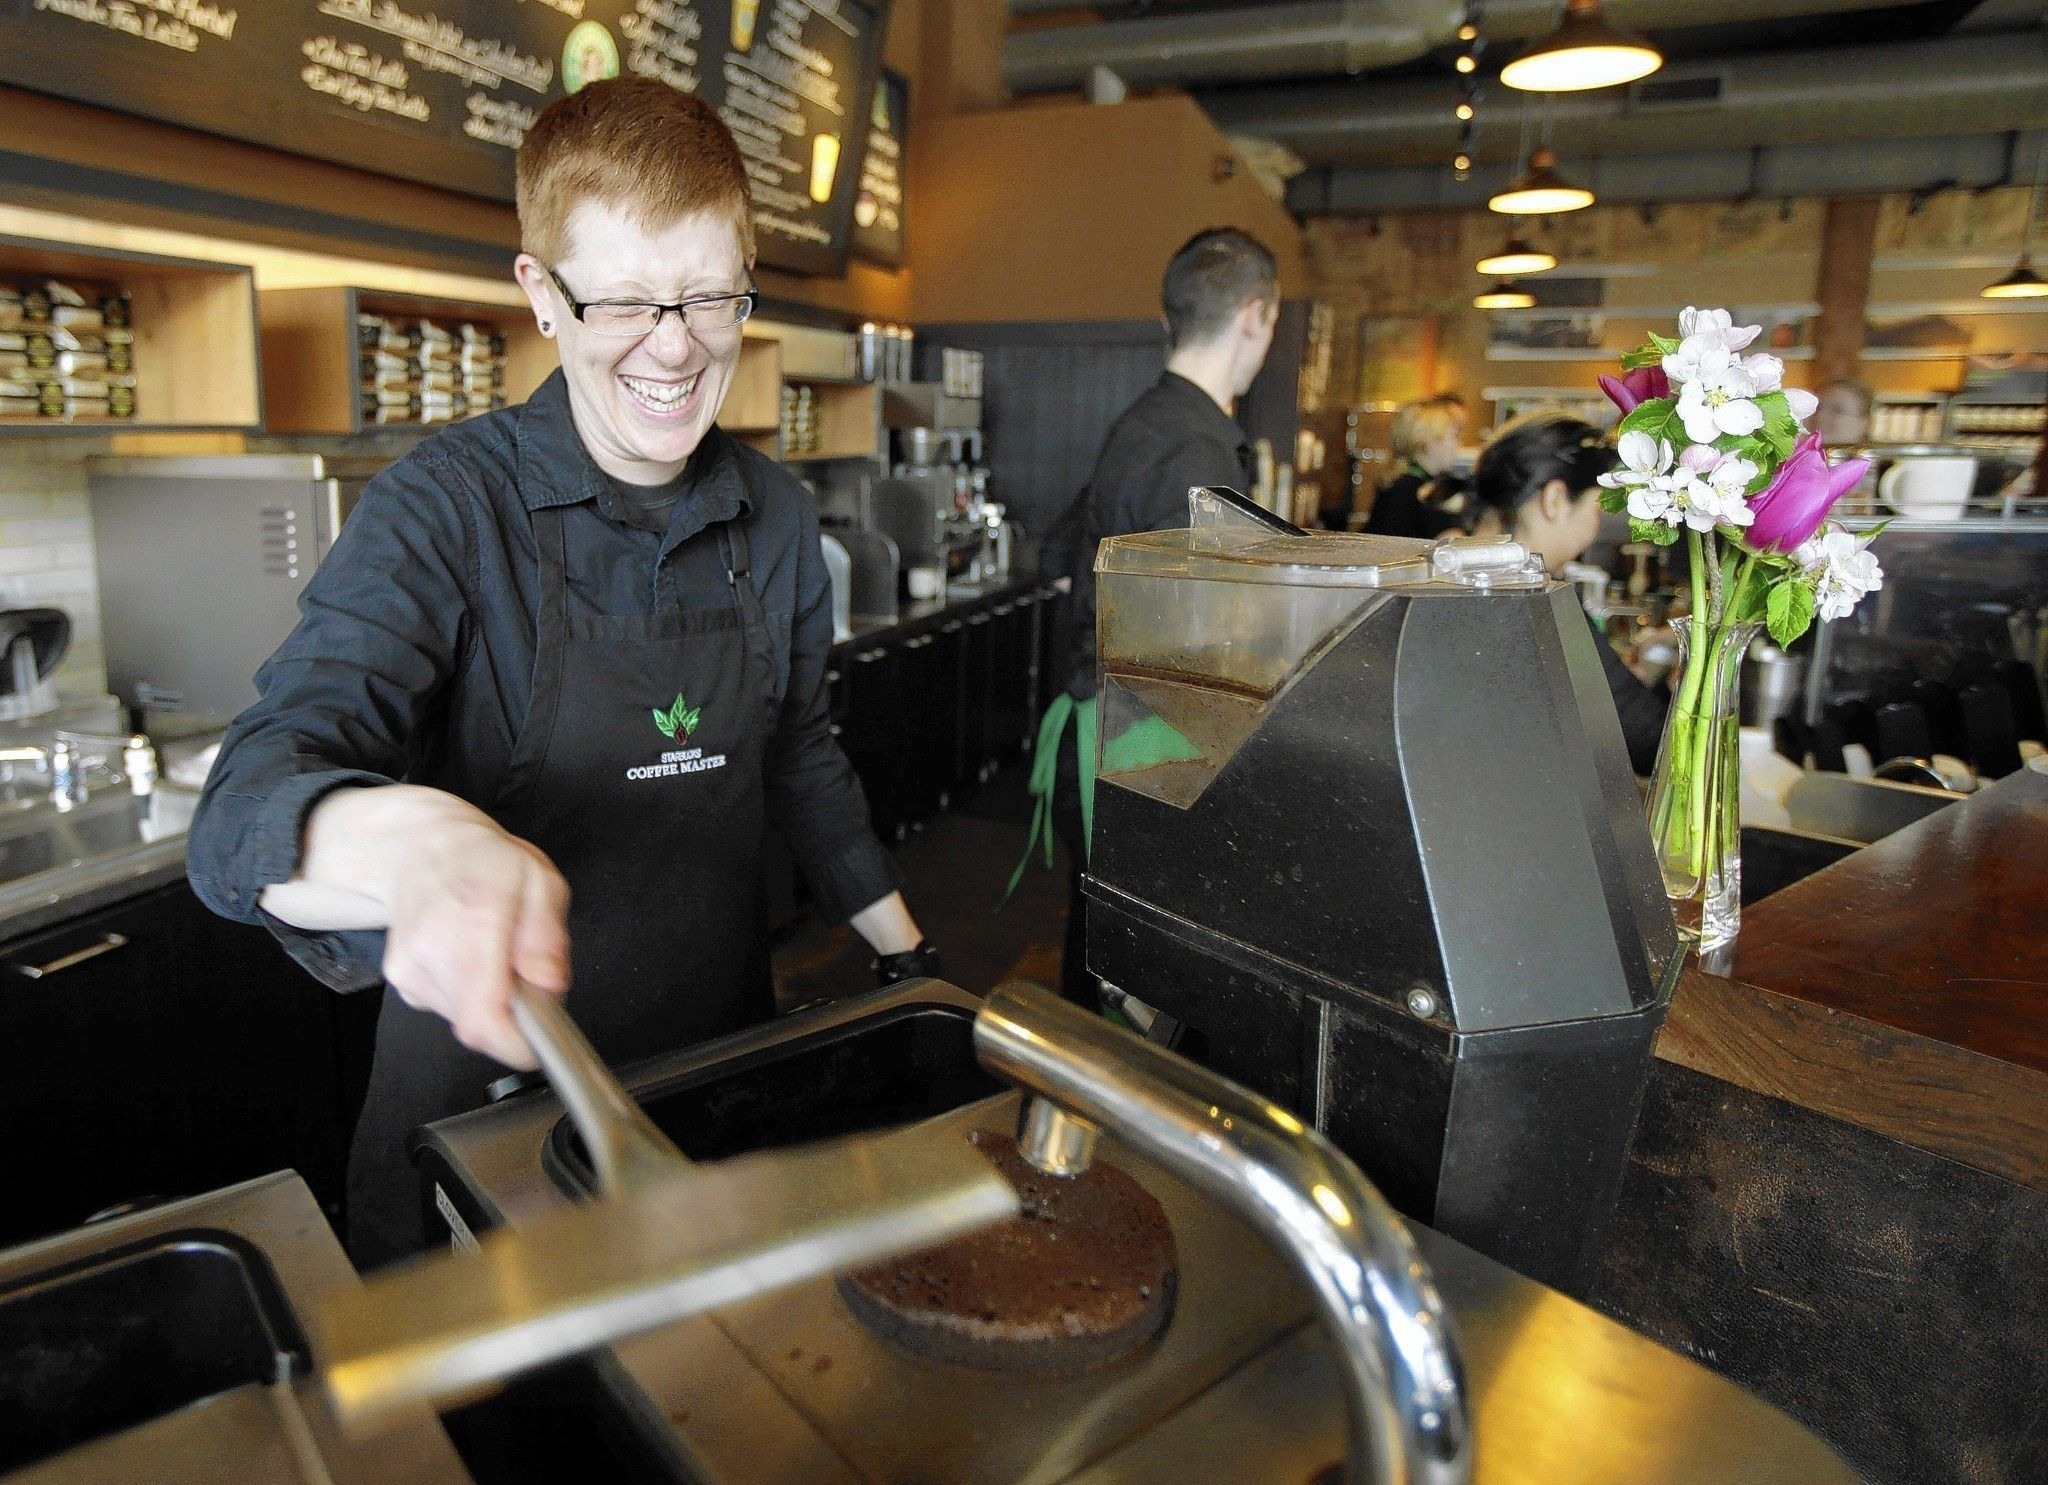 Starbucks to pay tuition of workers enrolling online at